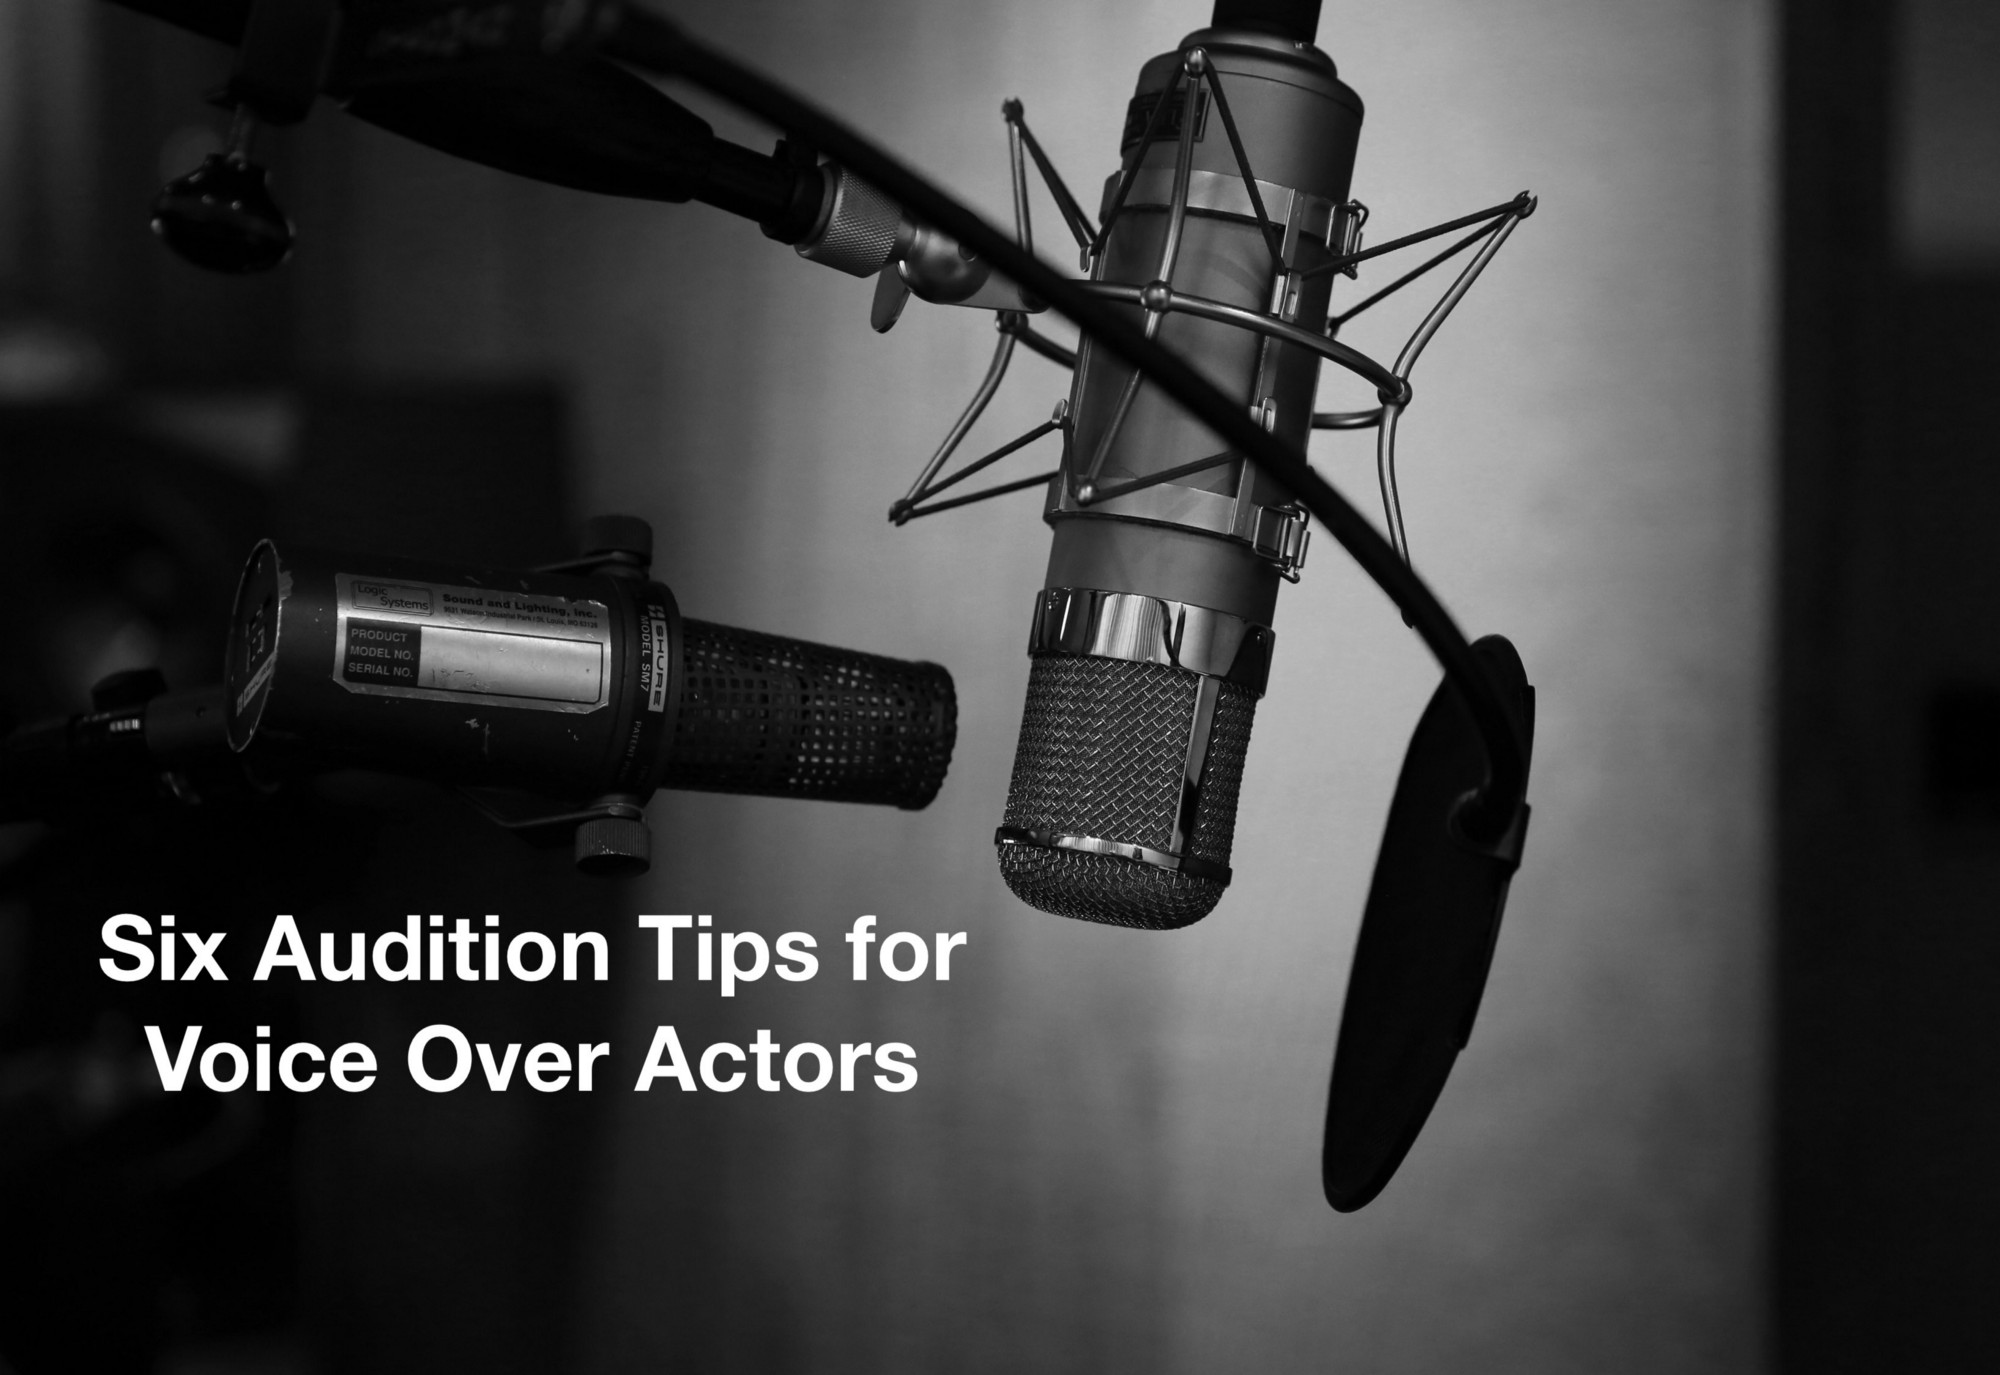 Six Audition Tips for Voice Over Actors - John Kovacevich - Medium